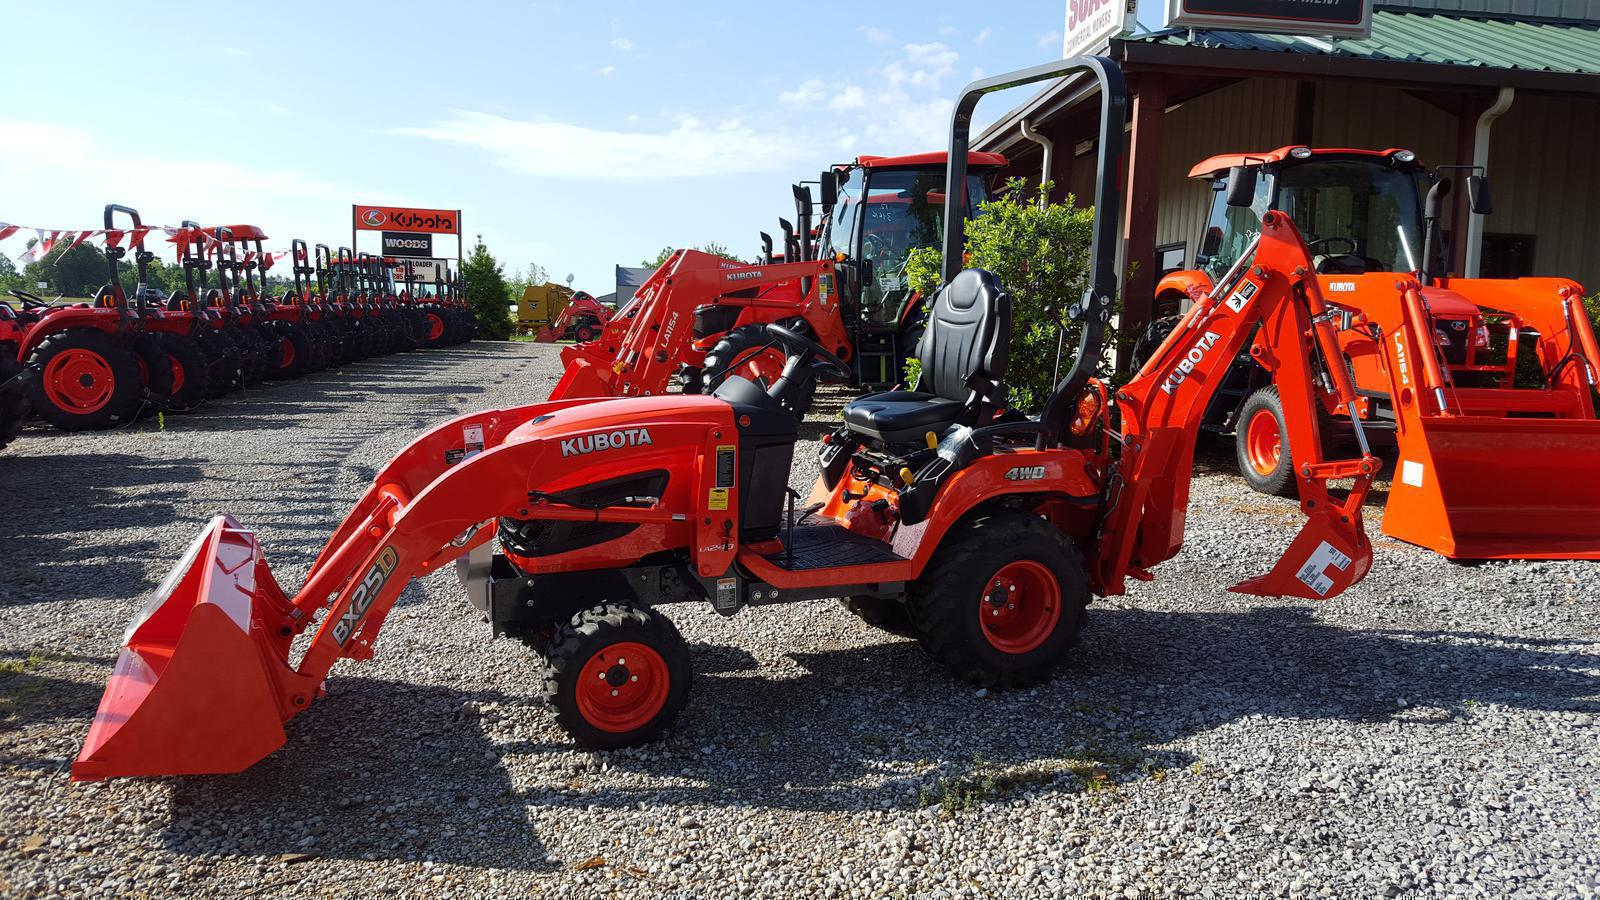 Kubota tractors for sale in kentucky - 2017 Kubota Bx25d 1 For Sale In Hickory Ky Horizon Lawn And Tractor 270 856 4355